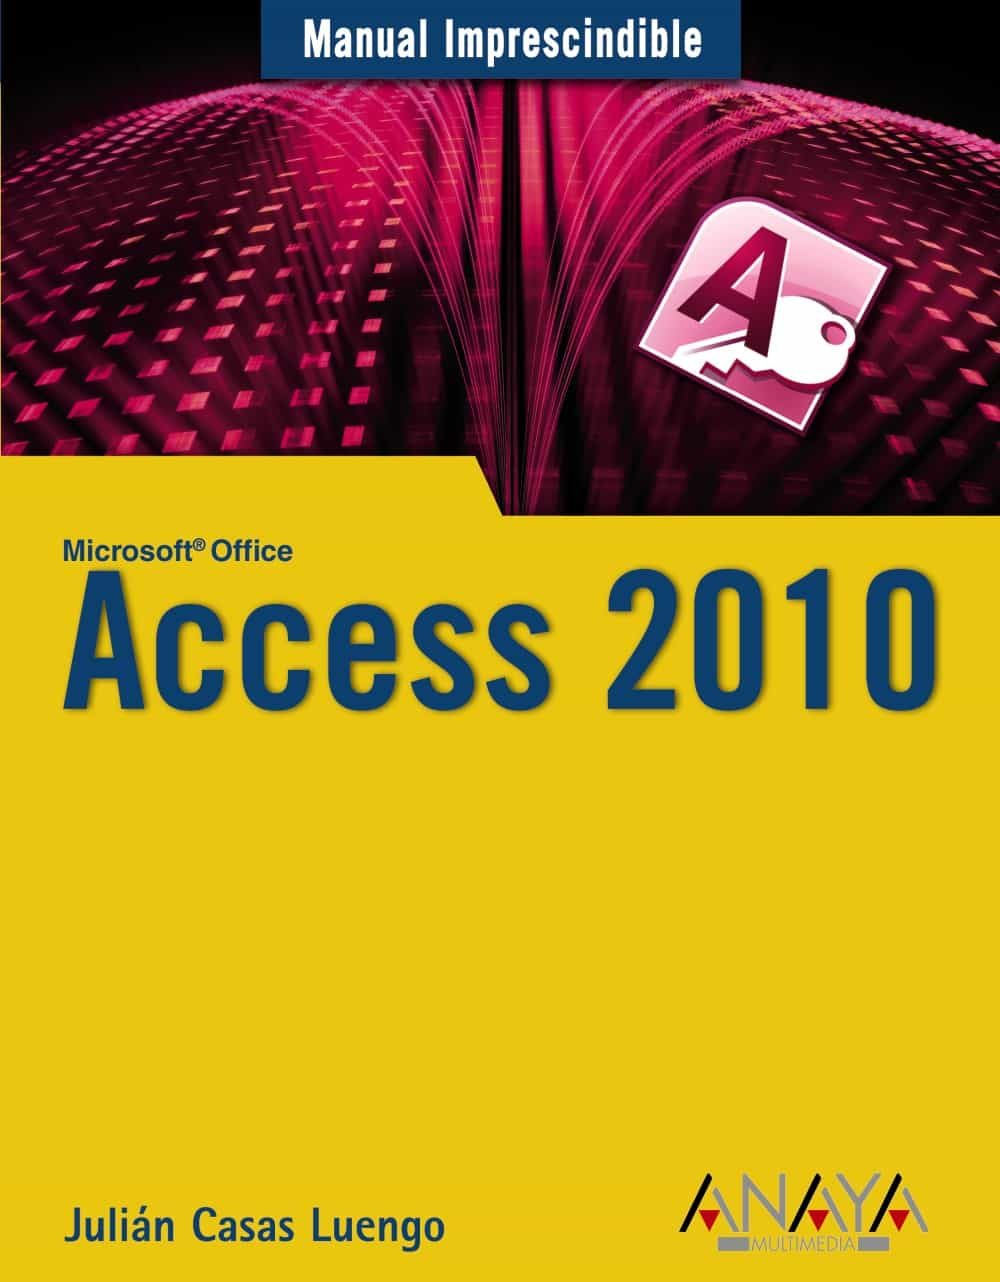 access 2010 manuales imprescindibles anaya julian casas rh casadellibro com access 2010 manual free download access 2010 manual basico pdf